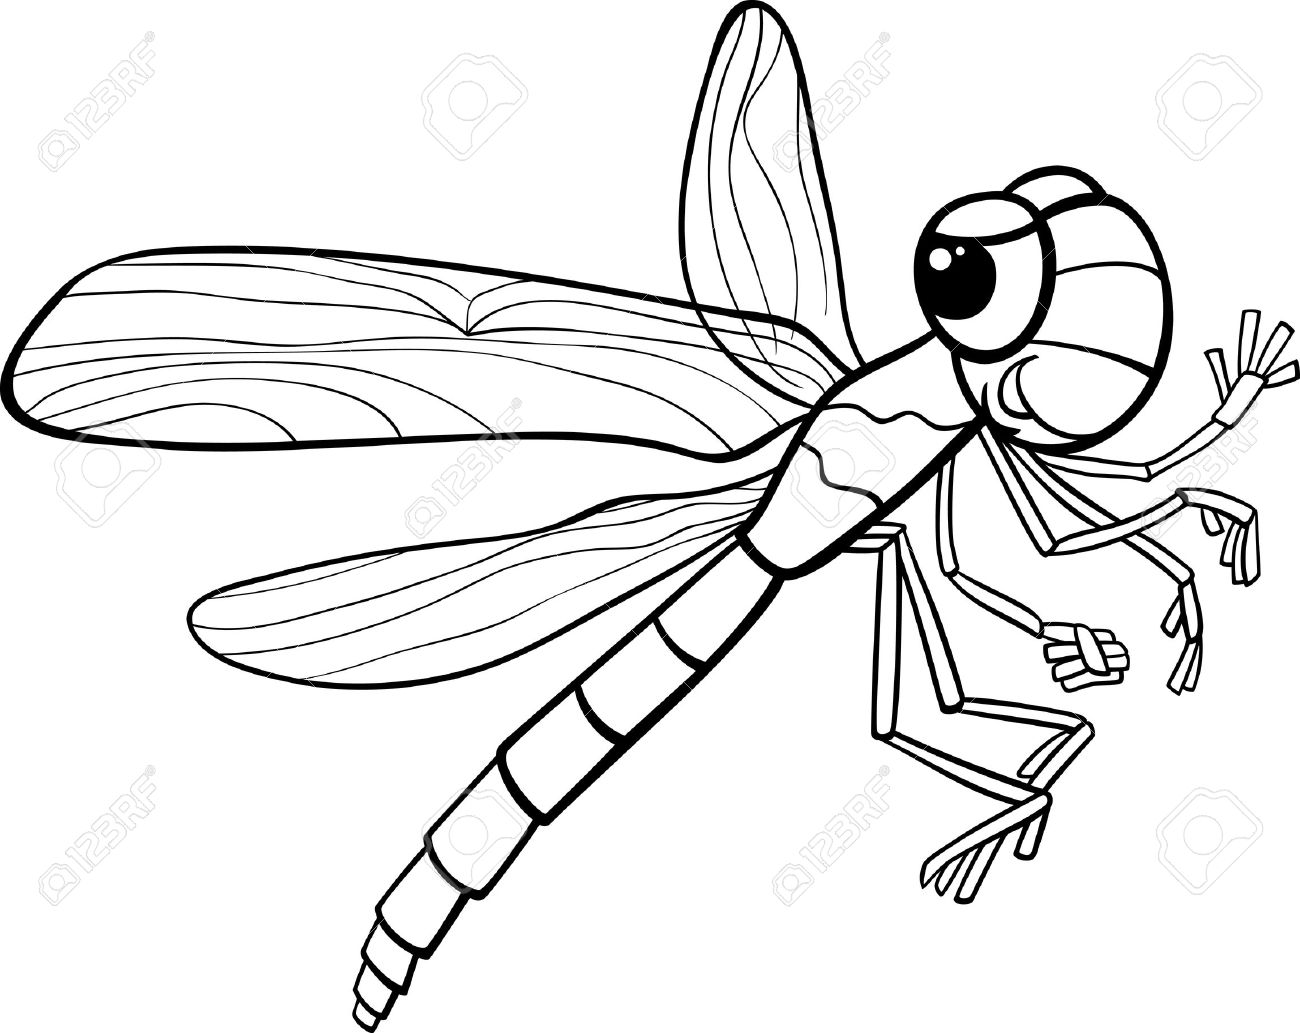 Black and White Cartoon Illustration of Funny Dragonfly Insect...